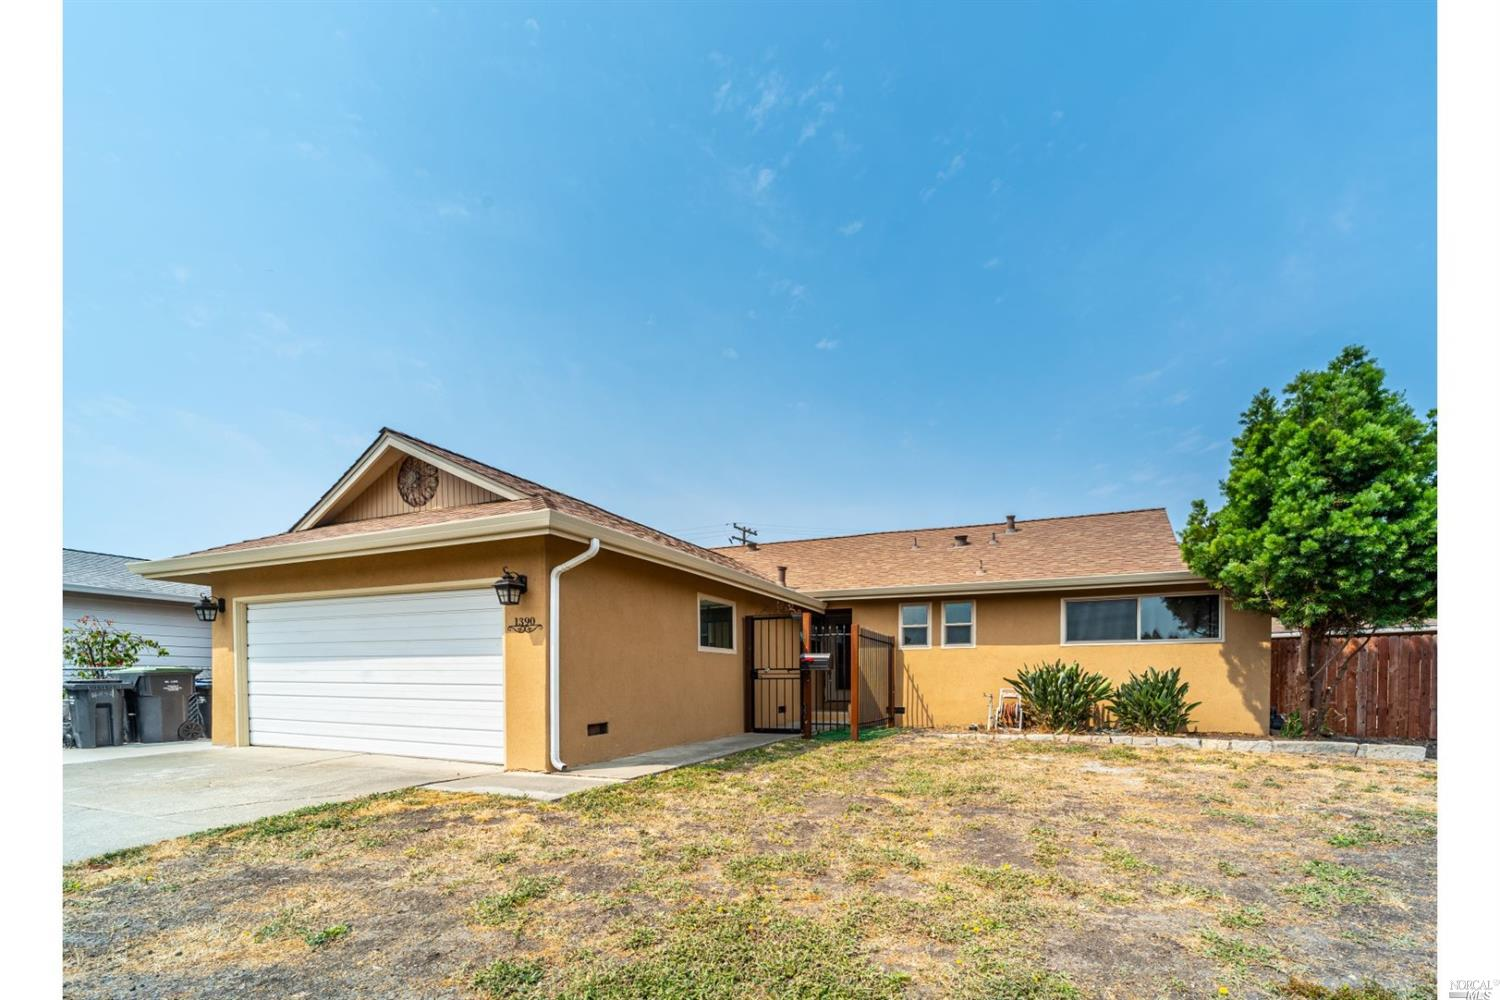 Updated home with new Kitchen. Newer double pan windows throughout. 3 Year old roof. Hardwood floors